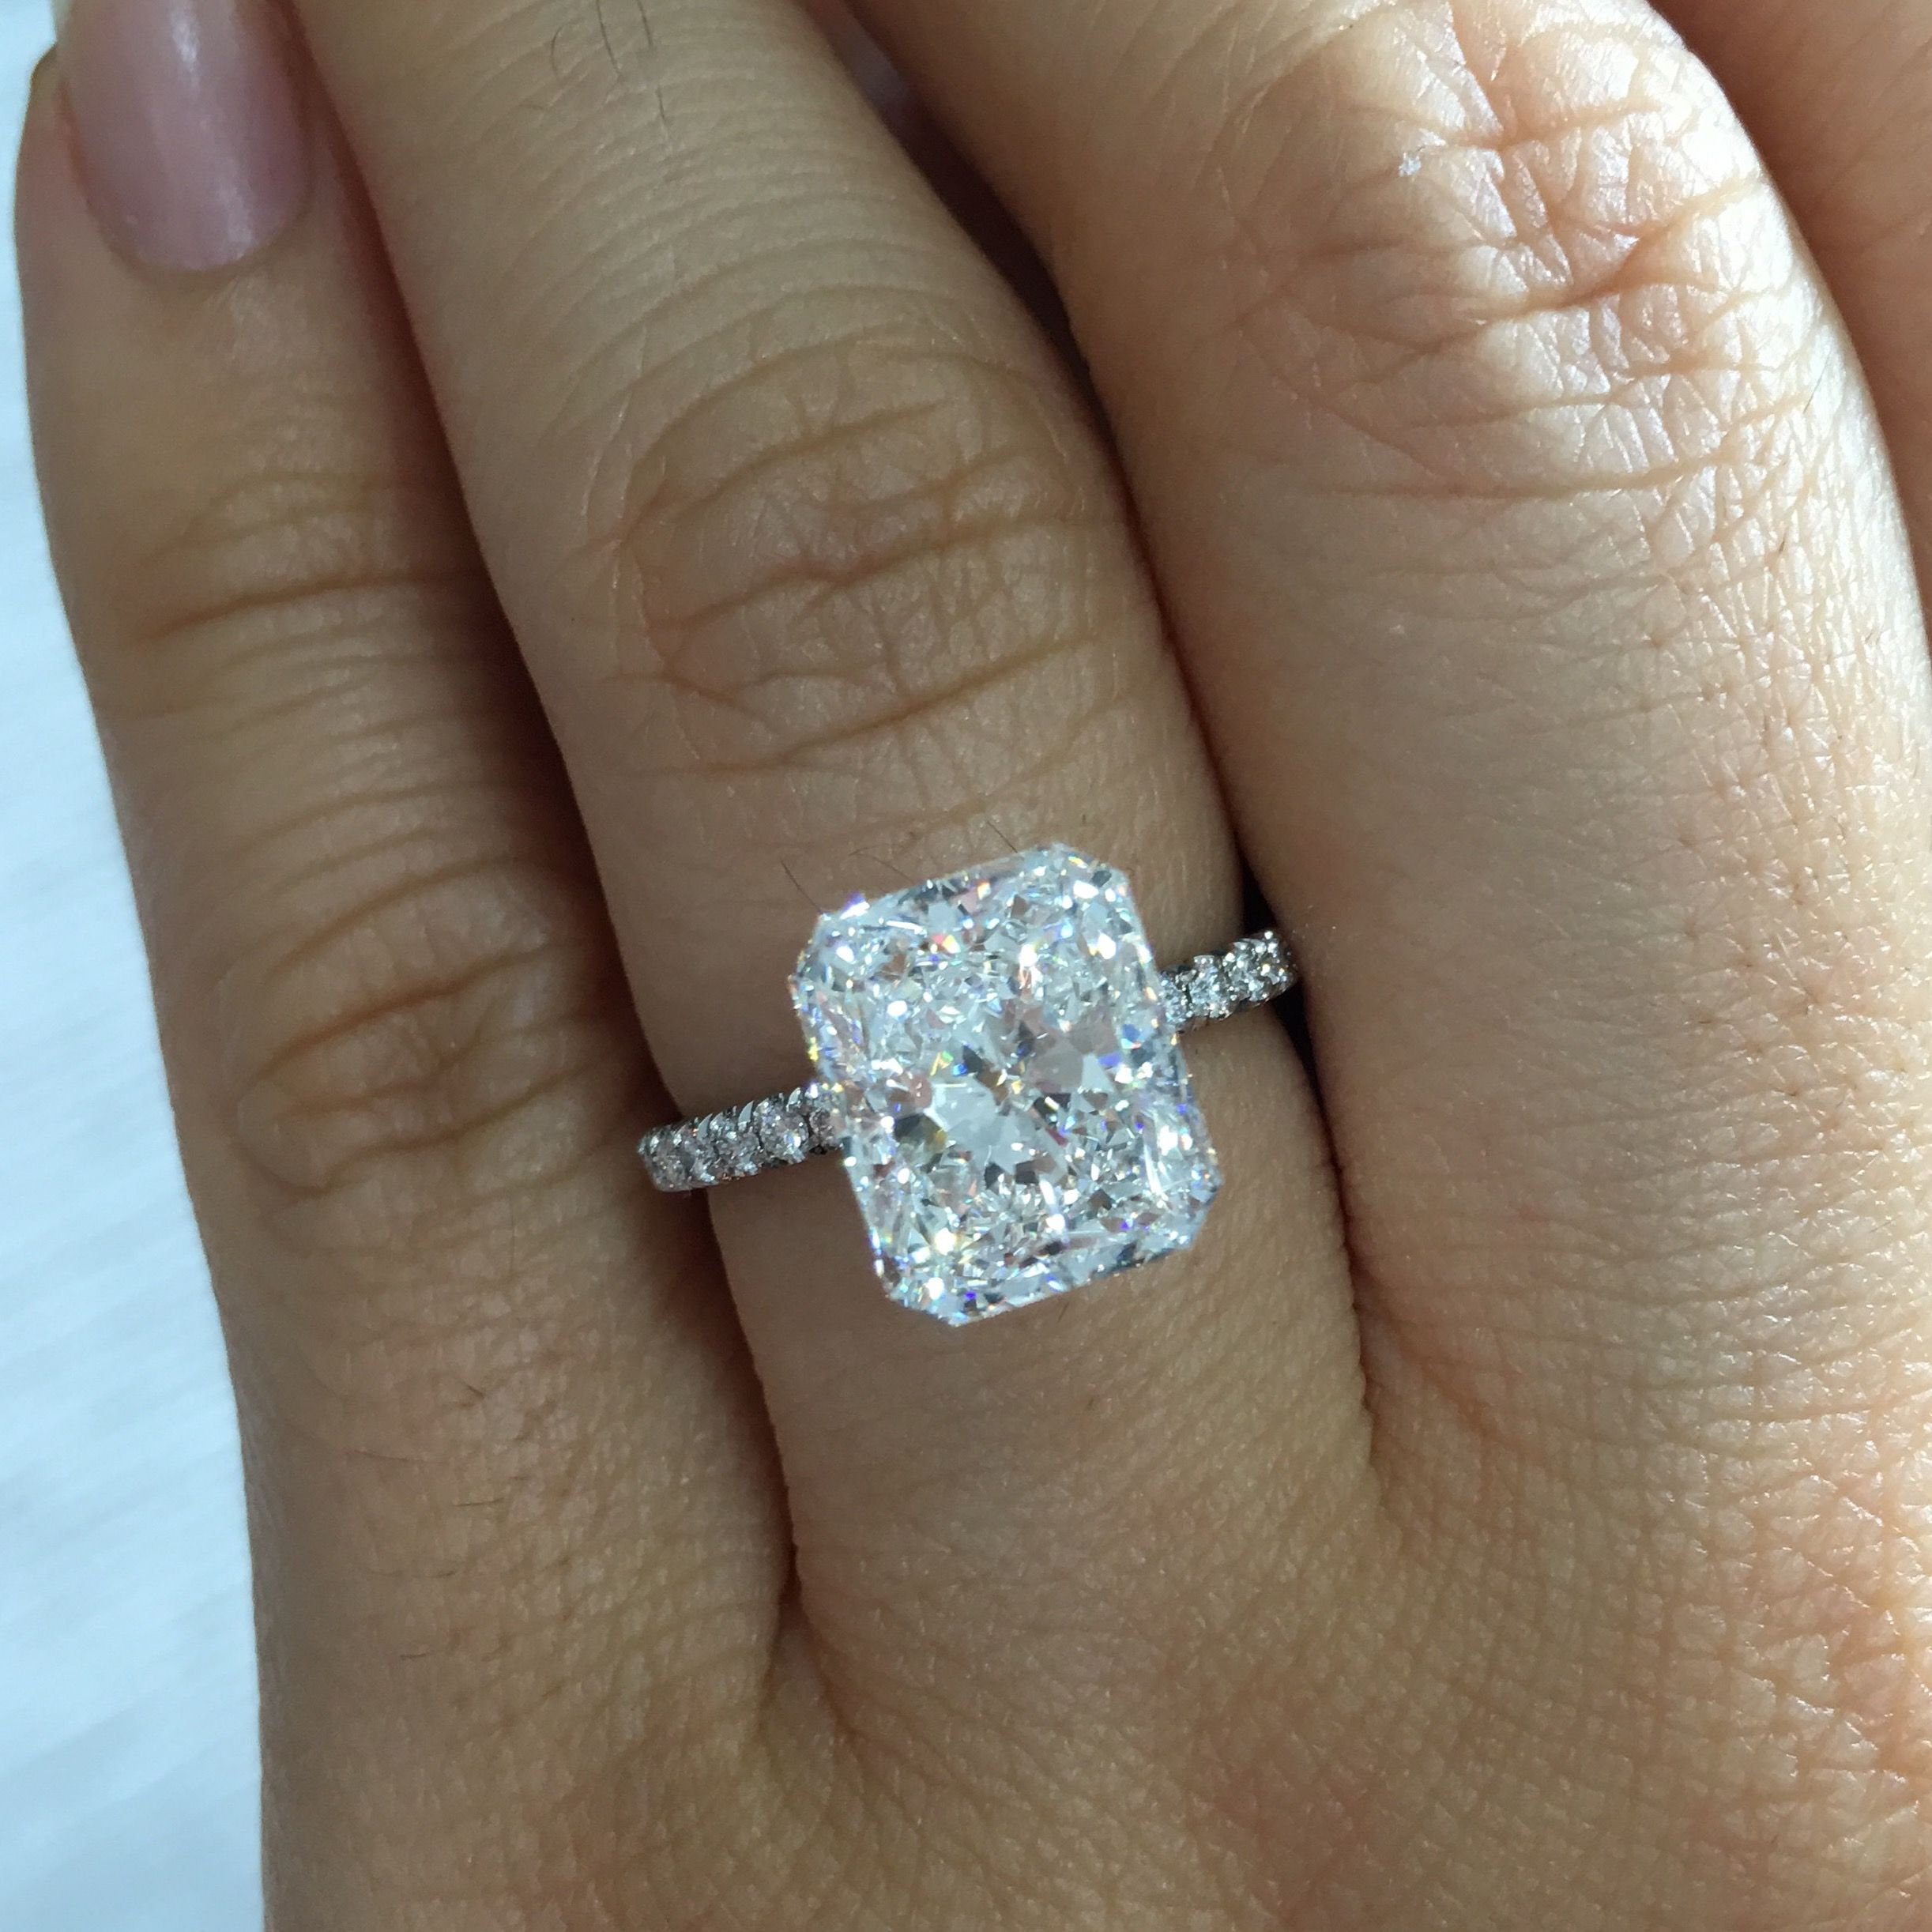 Anna is a handcrafted jean dousset solitaire engagement ring with